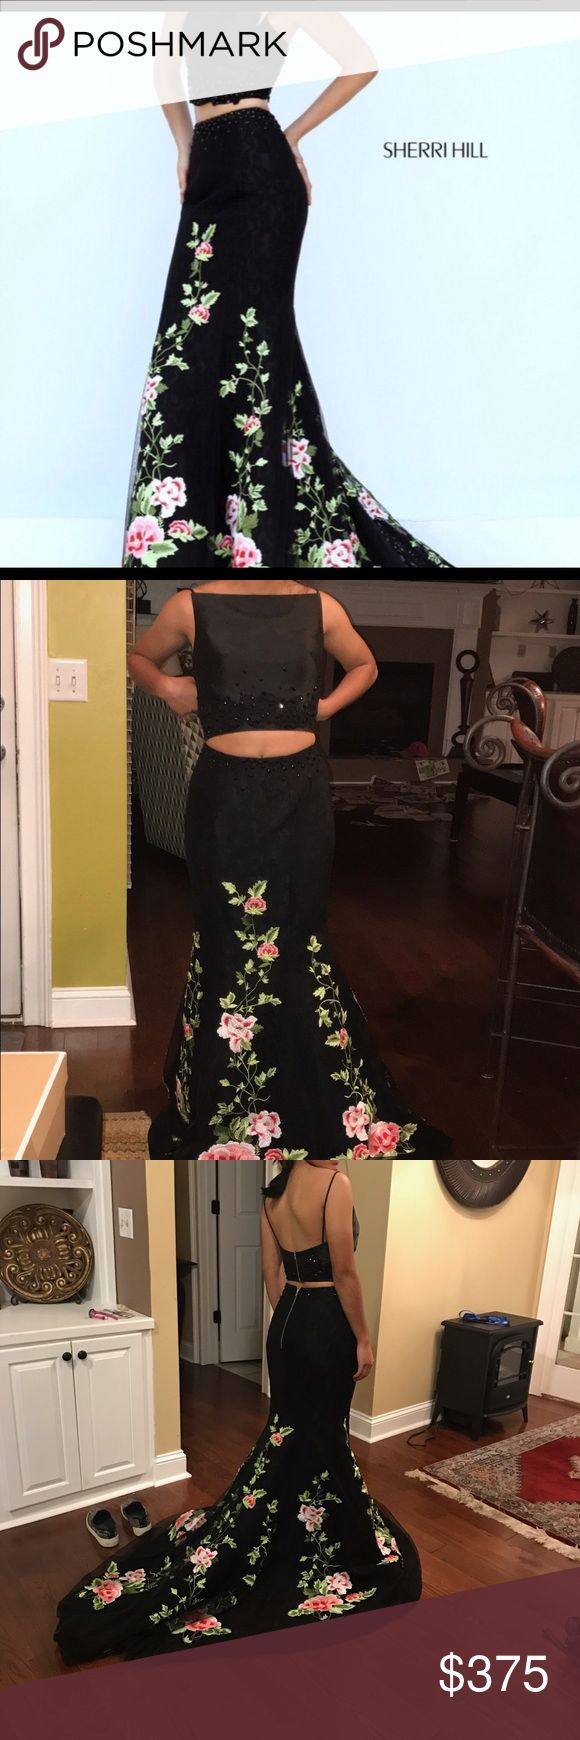 Black Sherri Hill dress black sherri hill dress! minor alterations. Size 2. Sherri Hill Dresses